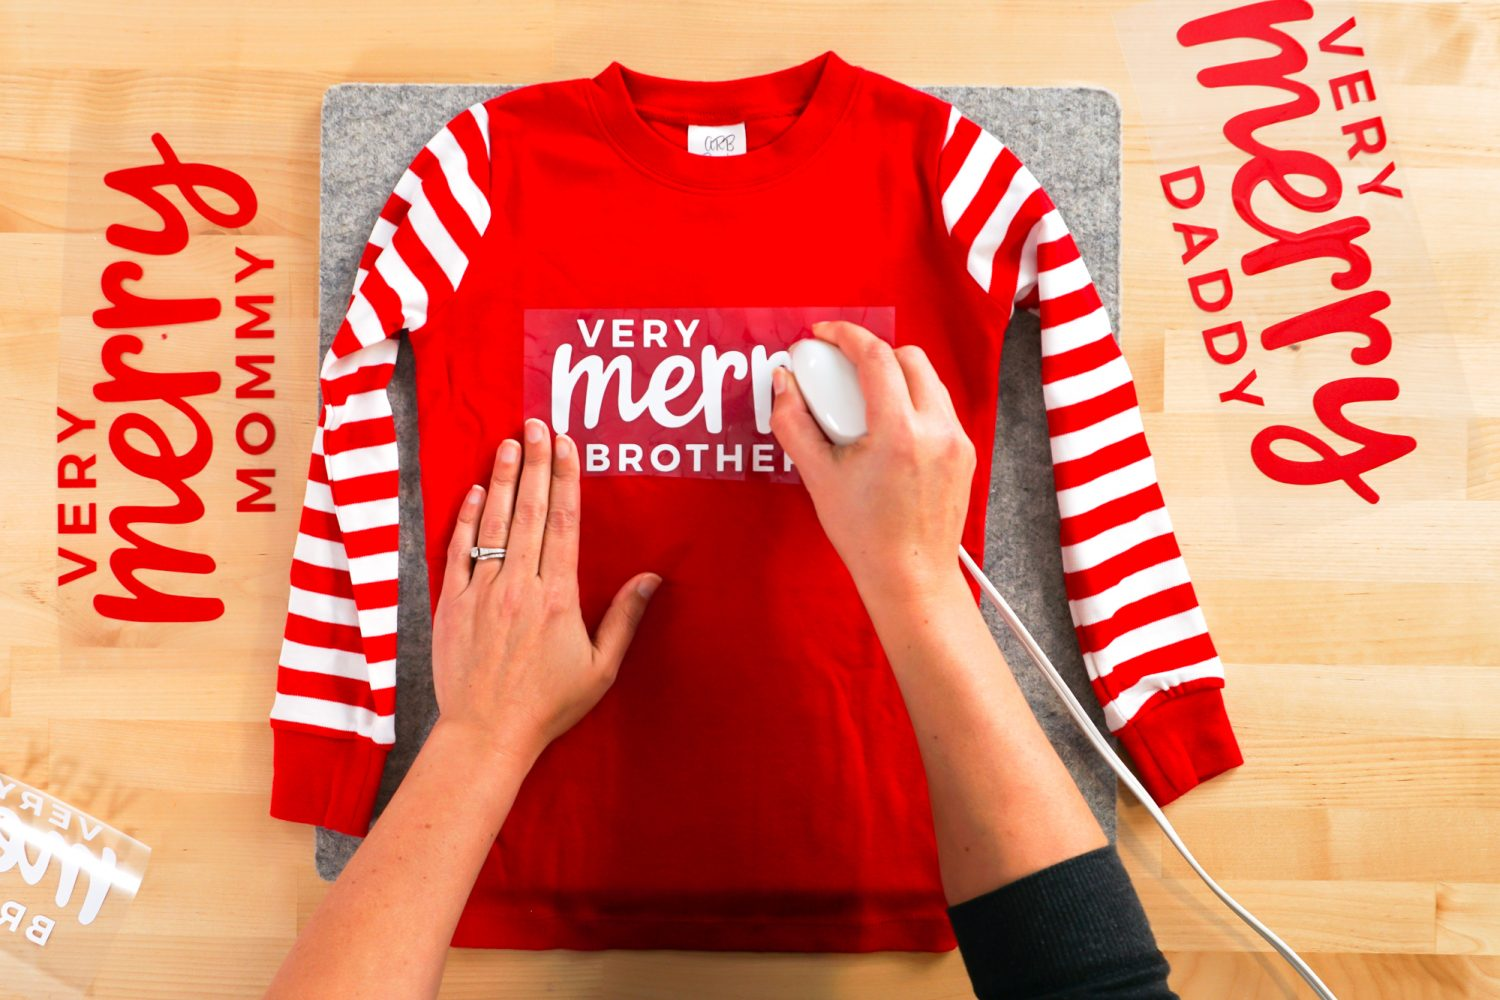 Hands ironing Very Merry Brother decal to shirt